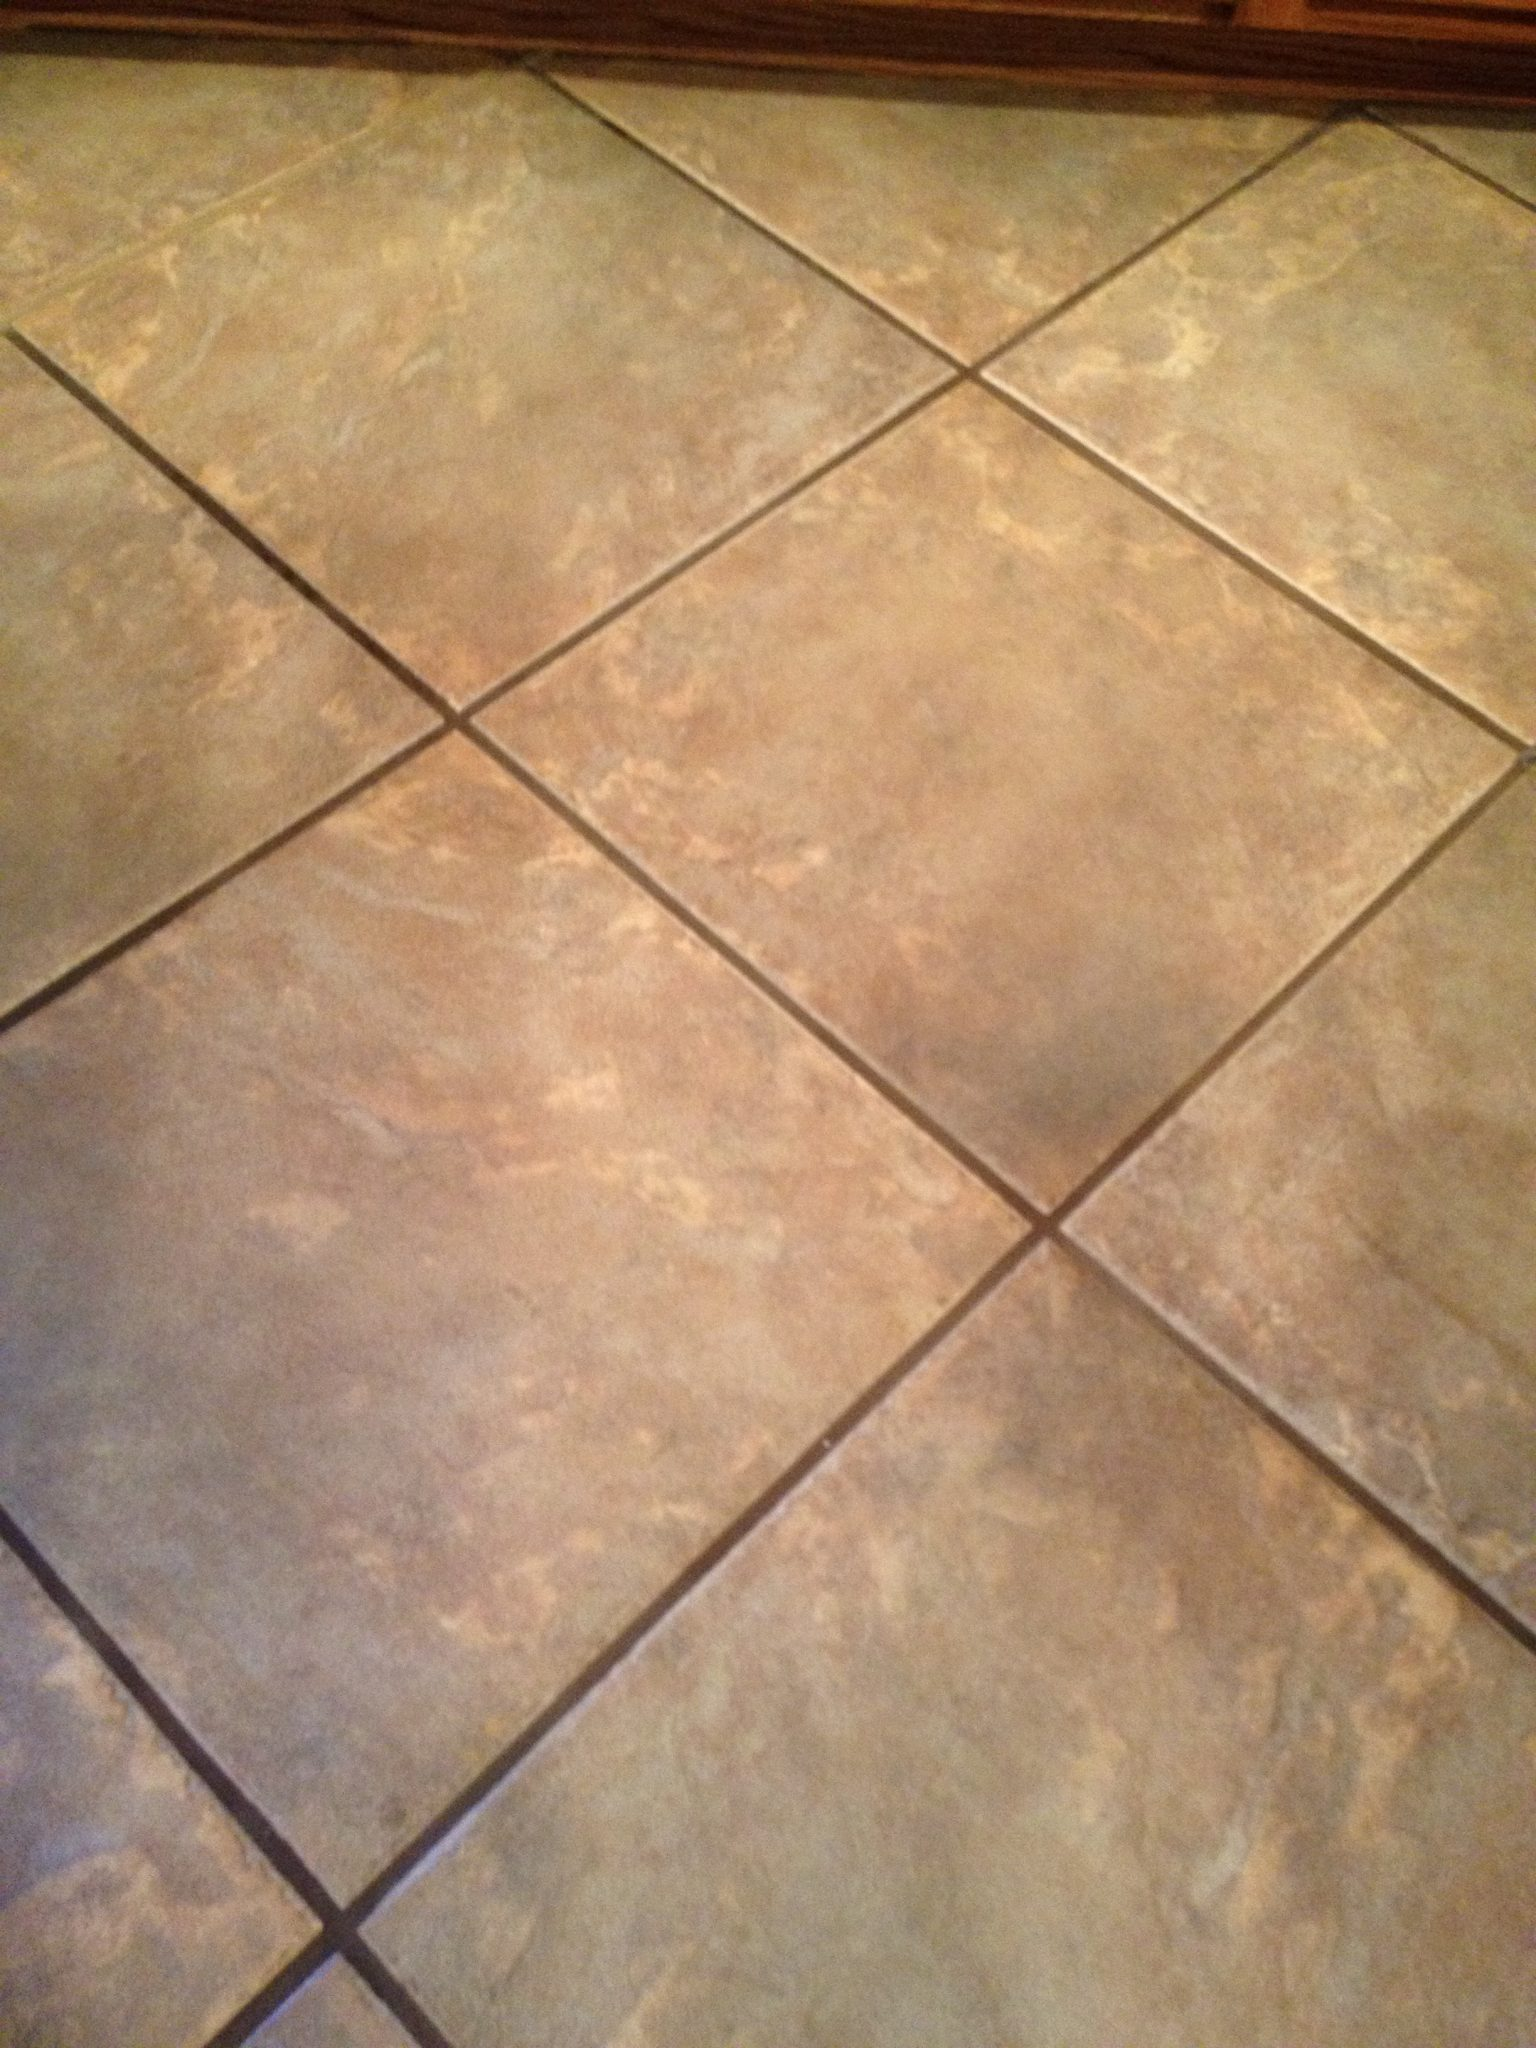 Porcelain Tile And Grout Before Cleaning Sealing Photo Credit Az Tucson